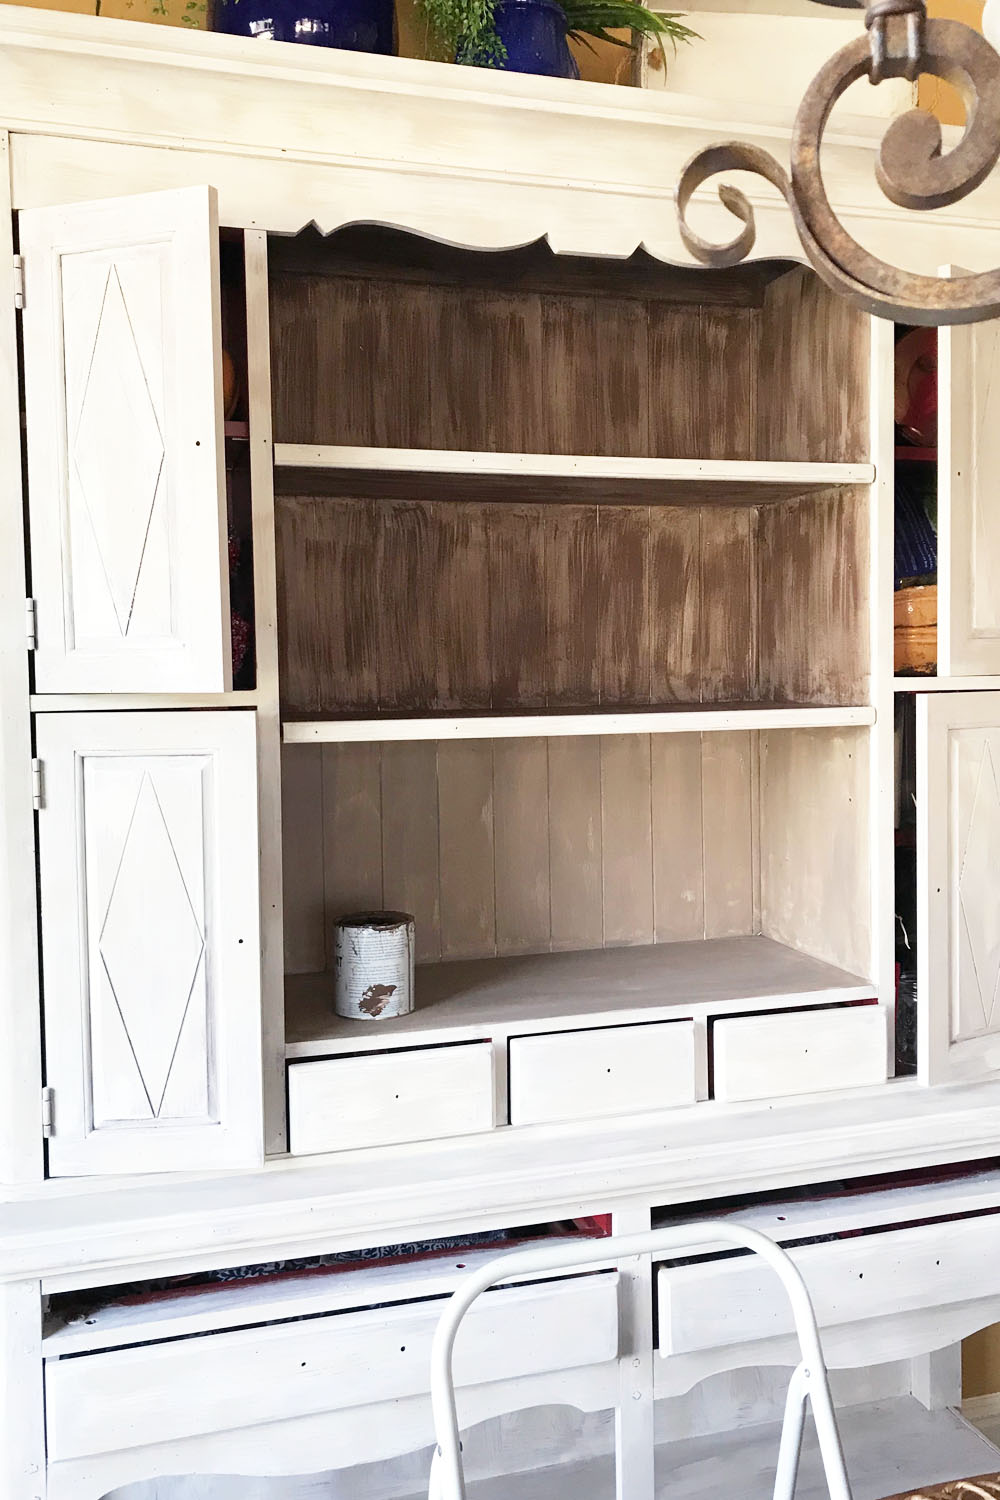 During the process of dry brushing Honfleur over the solid coat of Coco on the inner shelves.